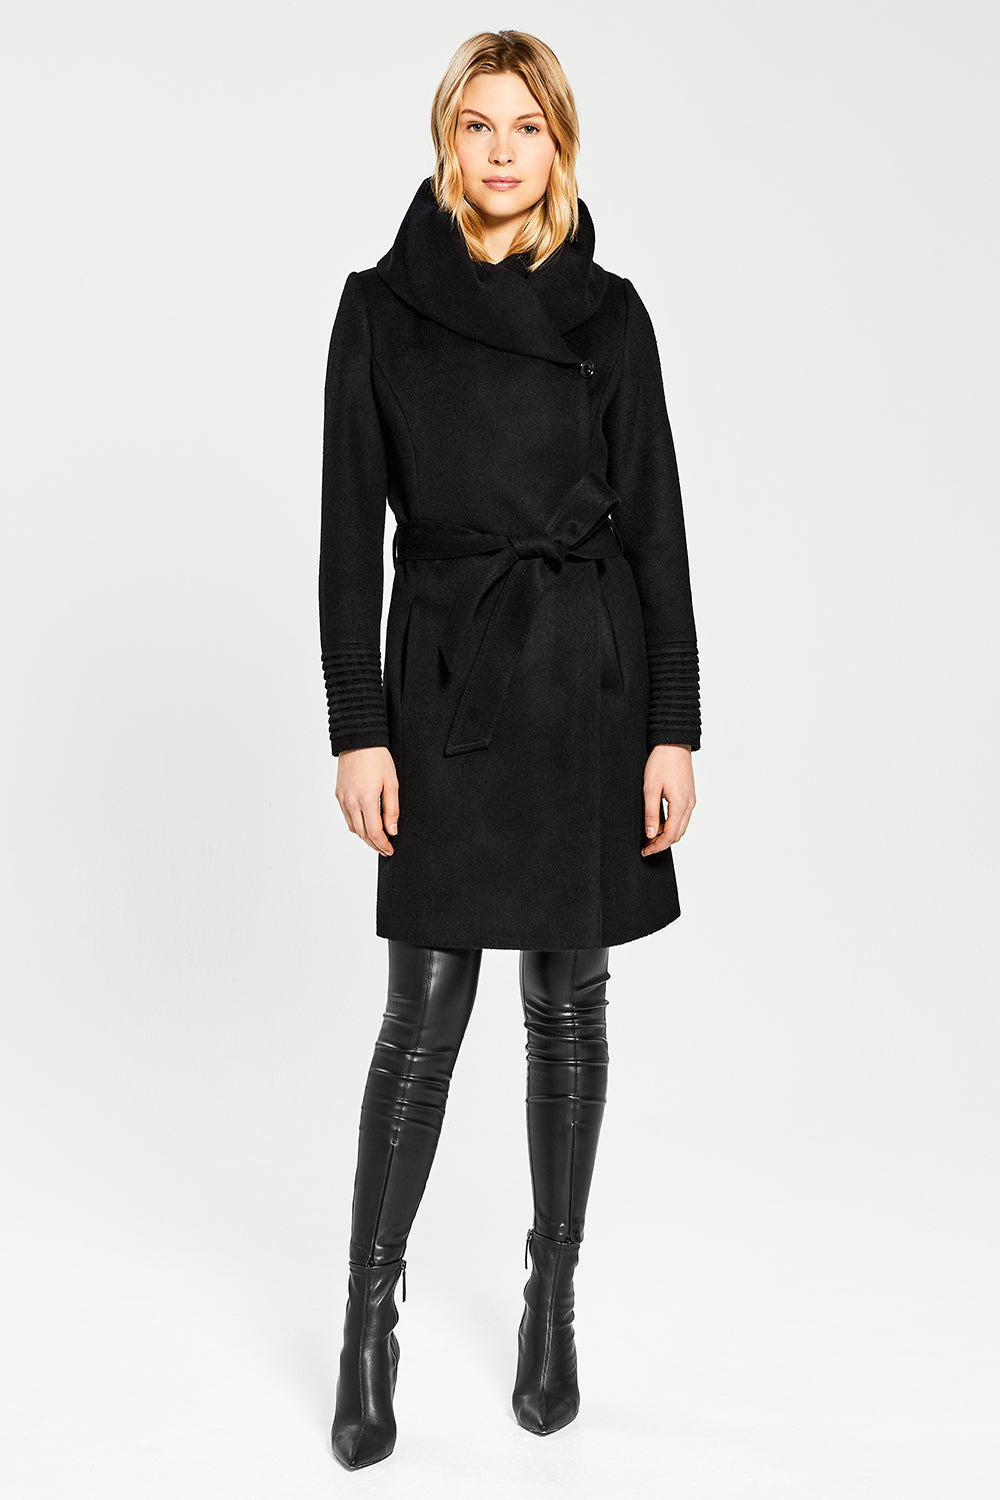 Sentaler Mid Length Hooded Wrap Coat featured in Baby Alpaca and available in Black. Seen from front.